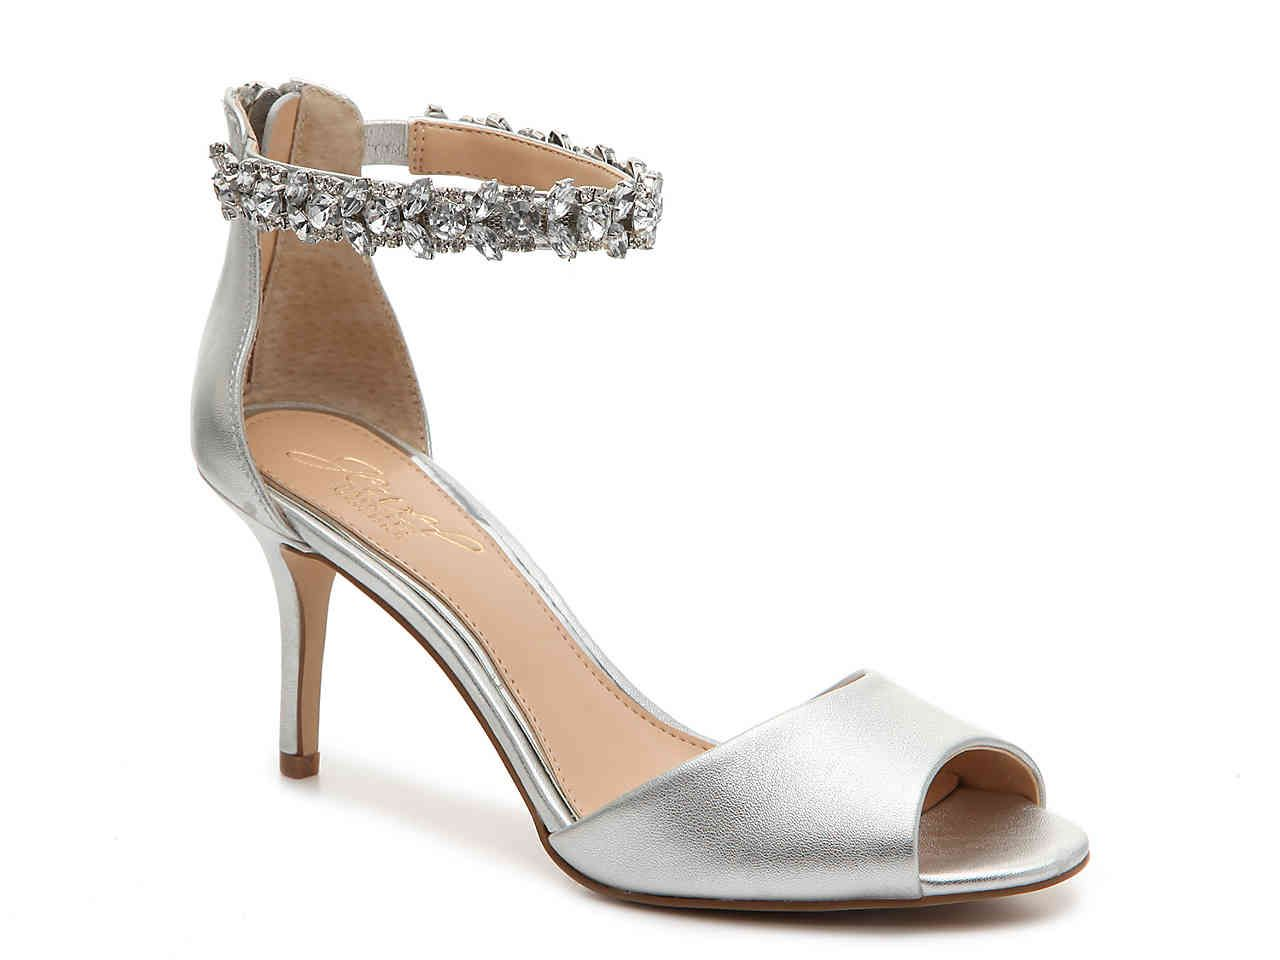 Genevieve Sandal | Womens evening shoes, Silver shoes low